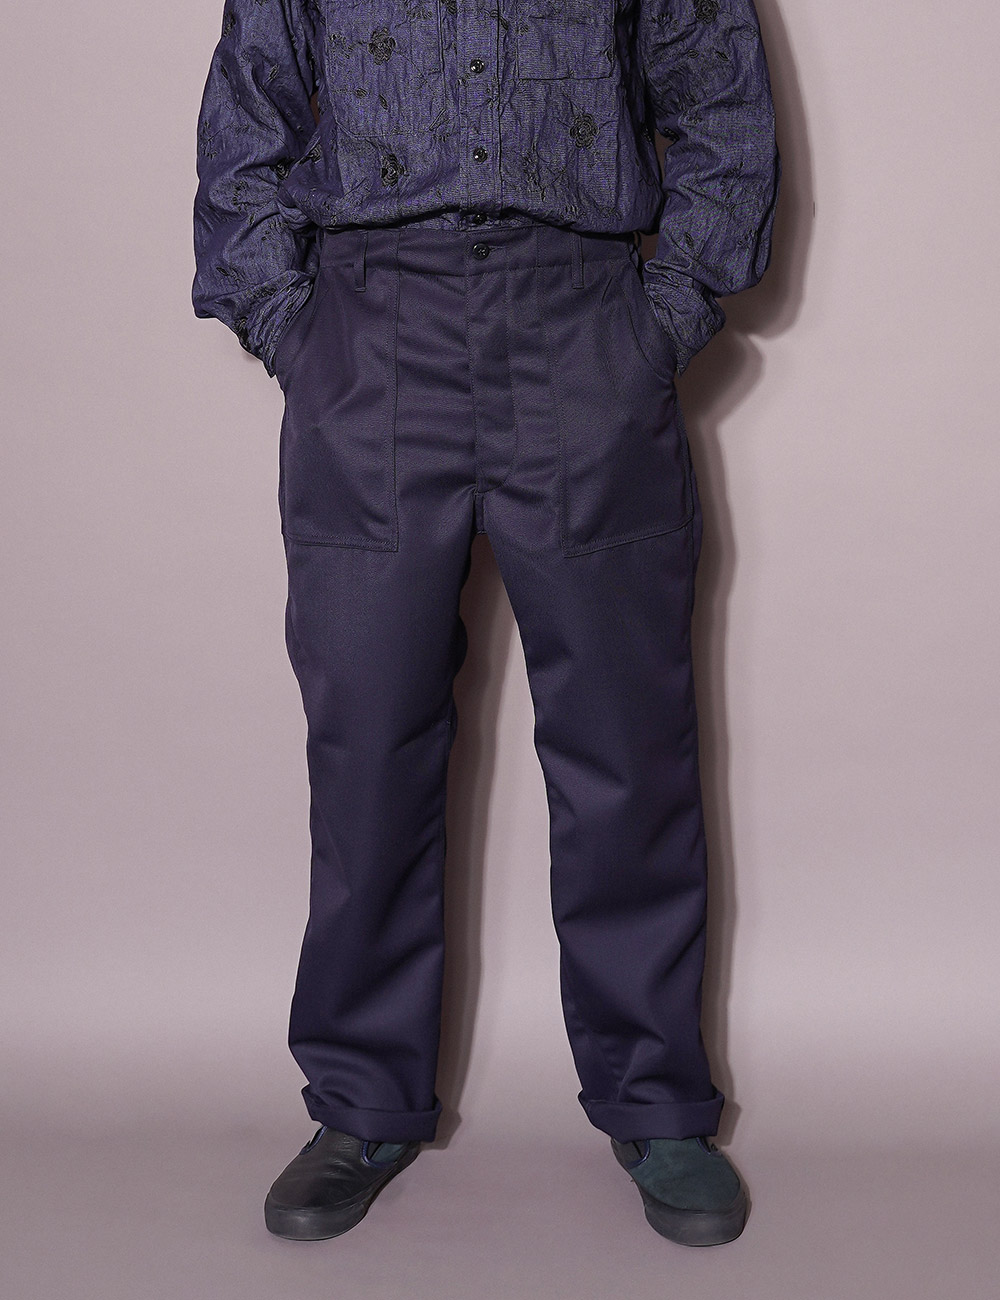 Engineered Garments WORKDAY : FATIGUE PANTS (DK.NAVY)